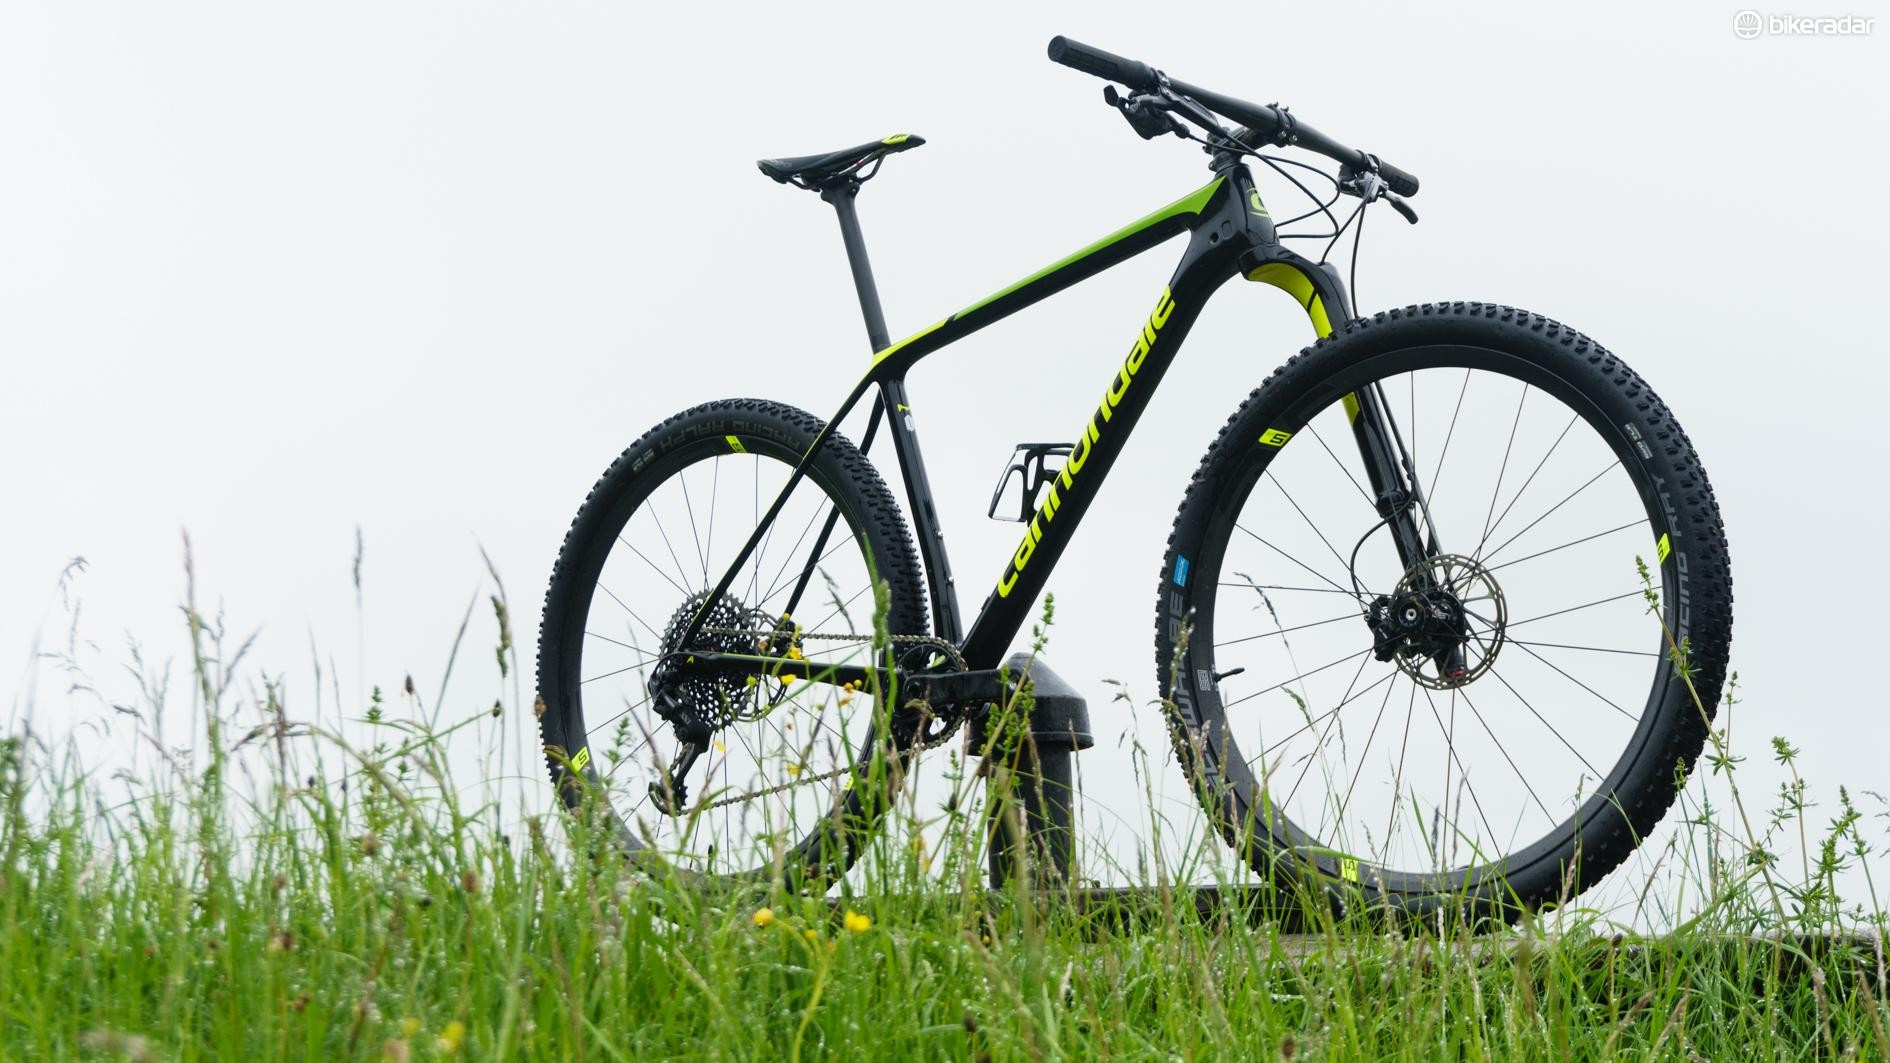 The Cannondale F-Si uses a PF30-83 Ai bottom bracket